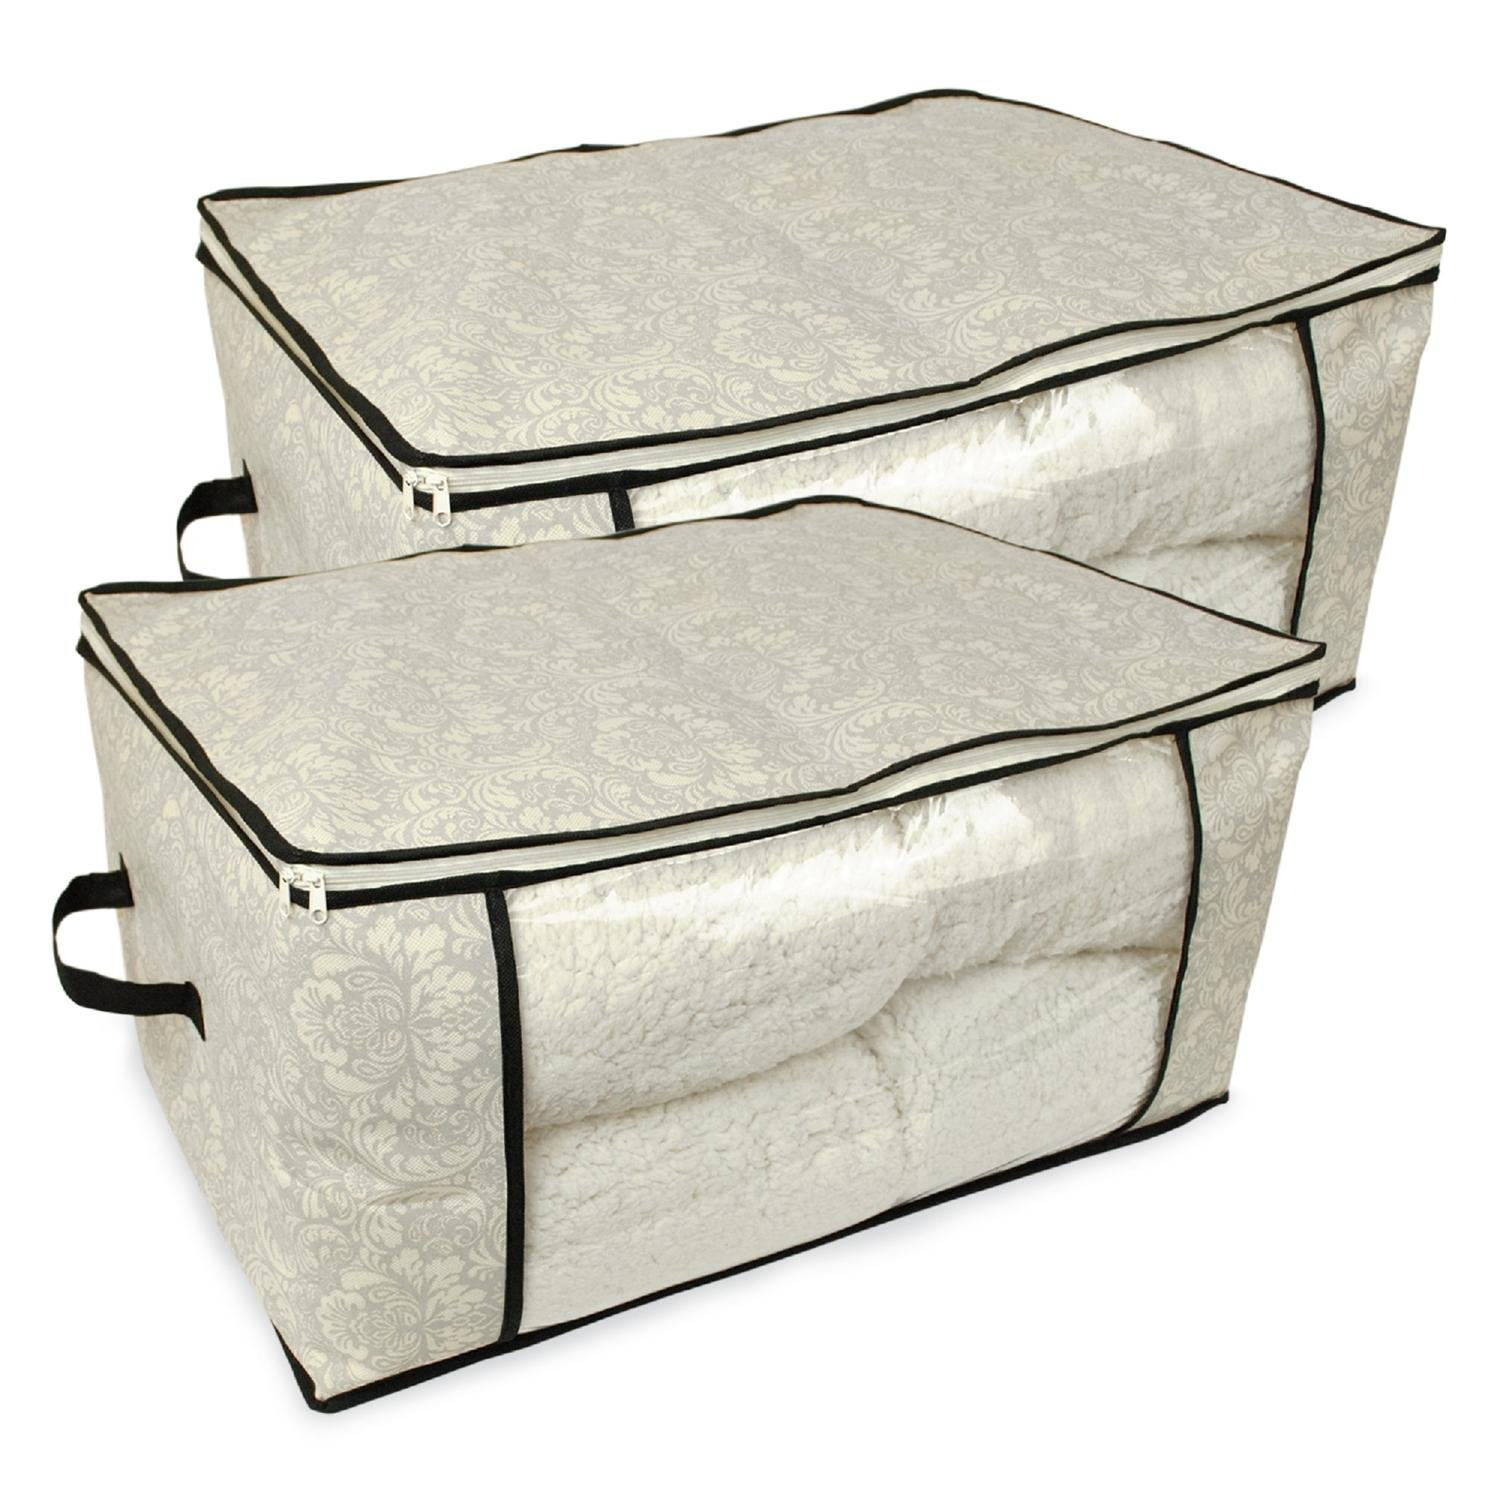 CC Home Furnishings Set of 2 Gray Damask Patterned Soft Storage Bins with Zipper Closure 18''